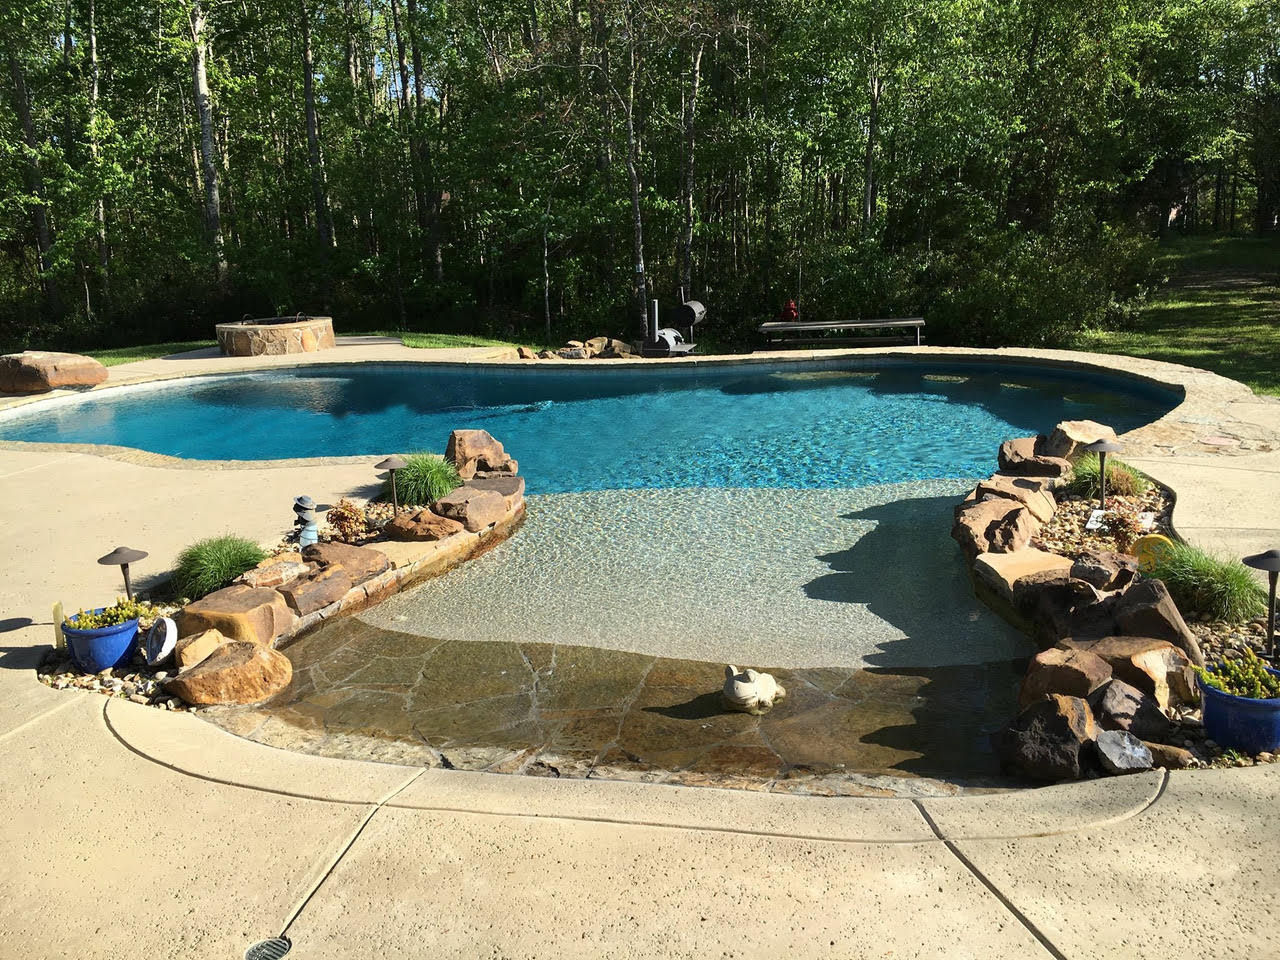 Custom Pool Builder Tyler Texas Gunite Construction Above Ground Outdoor Living Renovation Service And Repair